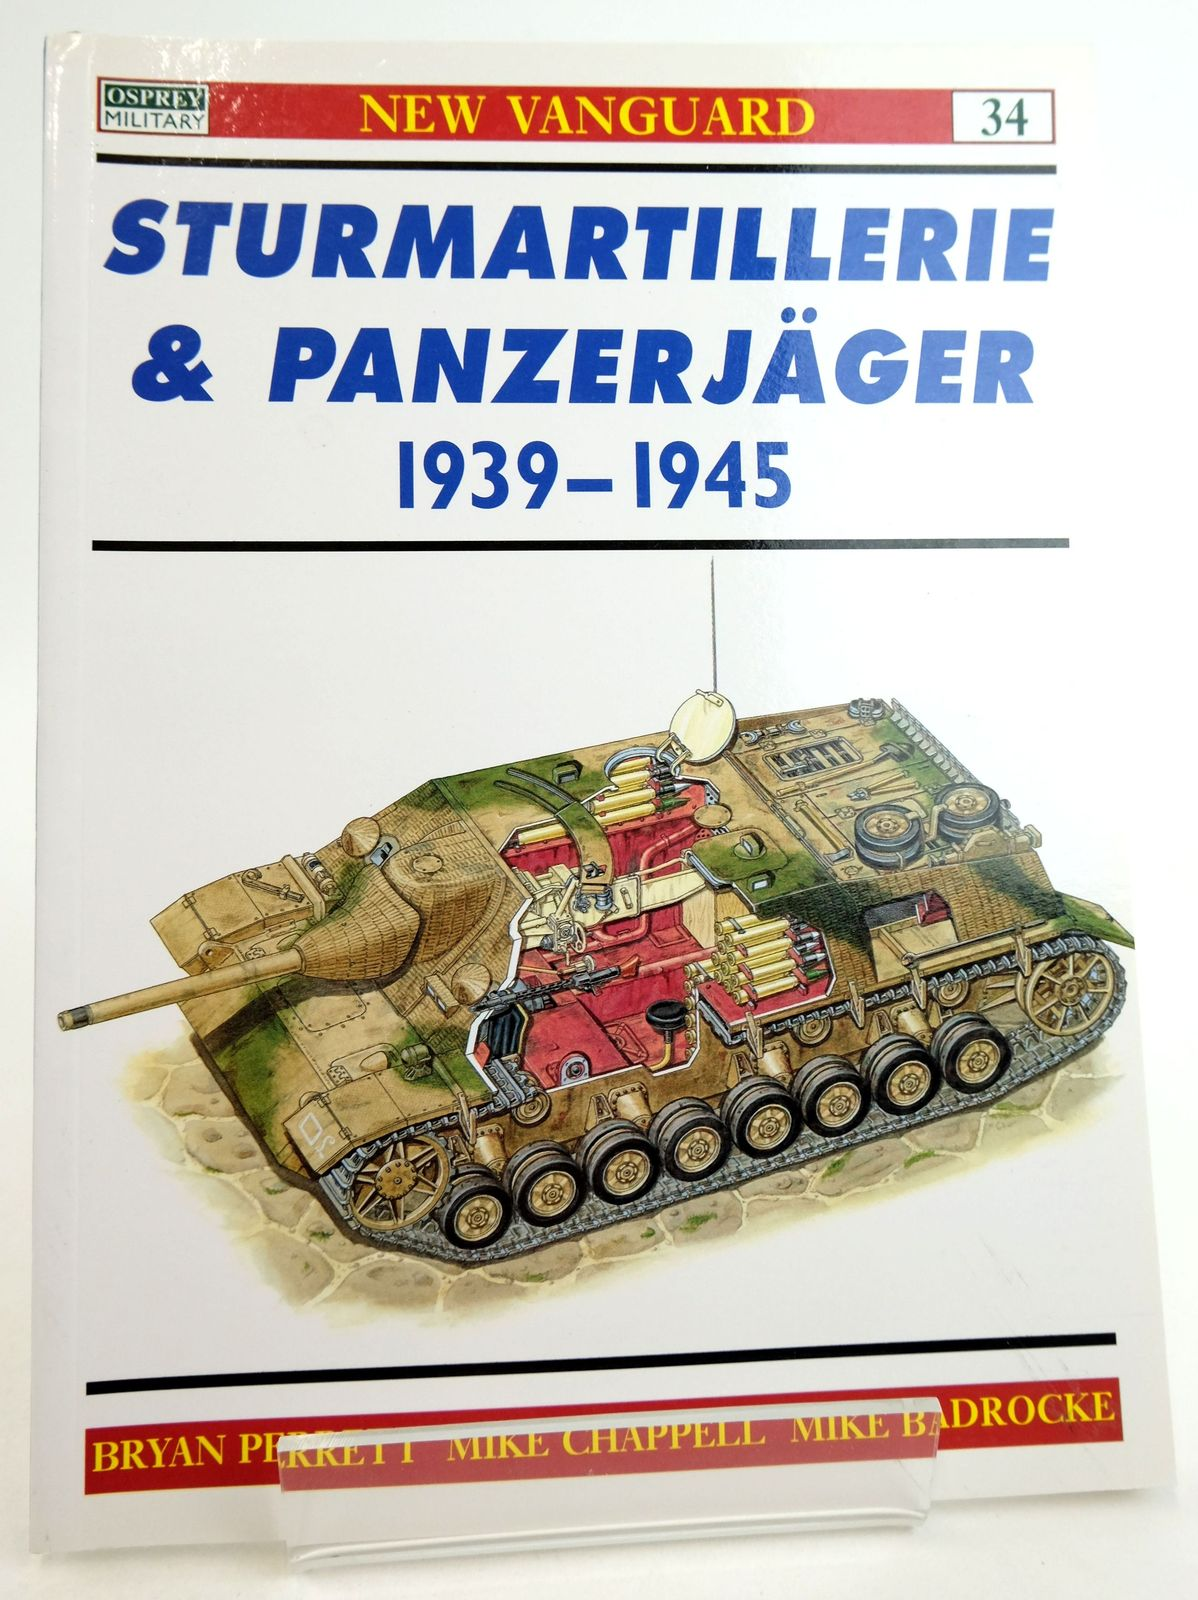 Photo of STURMARTILLERIE & PANZERJAGER 1939-1945 (NEW VANGUARD: 34) written by Perrett, Bryan illustrated by Chappell, Mike Badrocke, Mike published by Osprey Military (STOCK CODE: 1819897)  for sale by Stella & Rose's Books